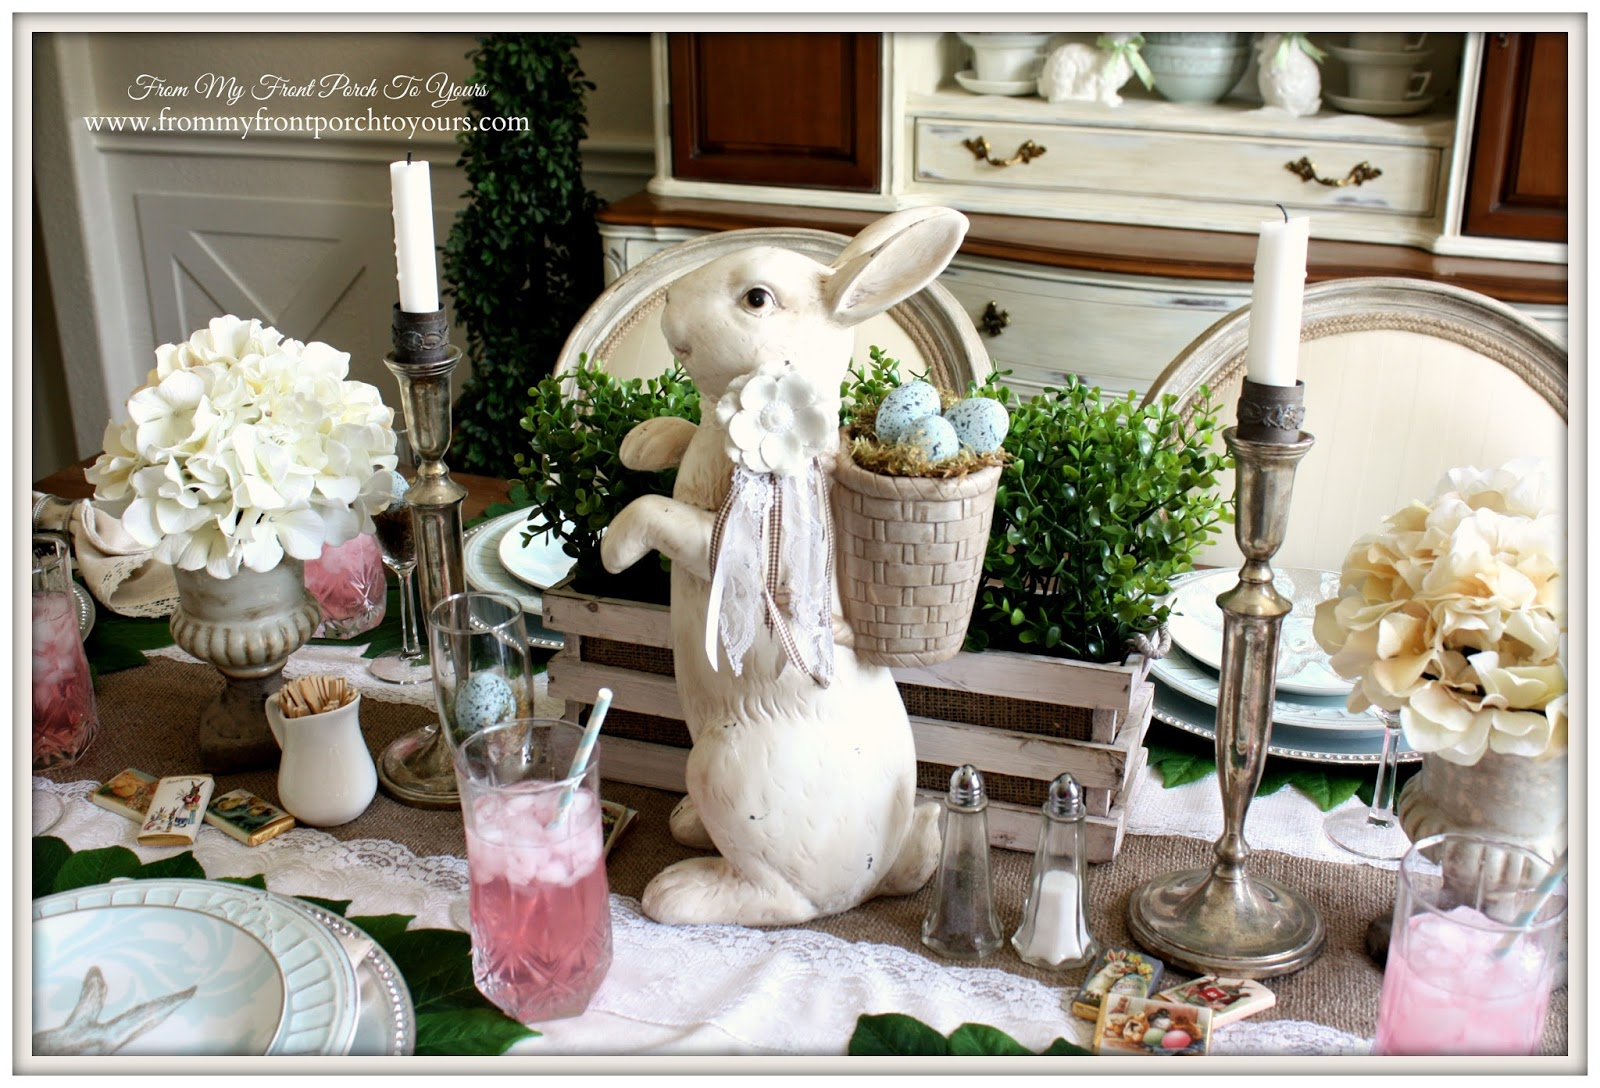 Rabbit Centerpiece-Easter Dining Room Decor-French Farmhouse Easter Dining Room- From My Front Porch To Yours